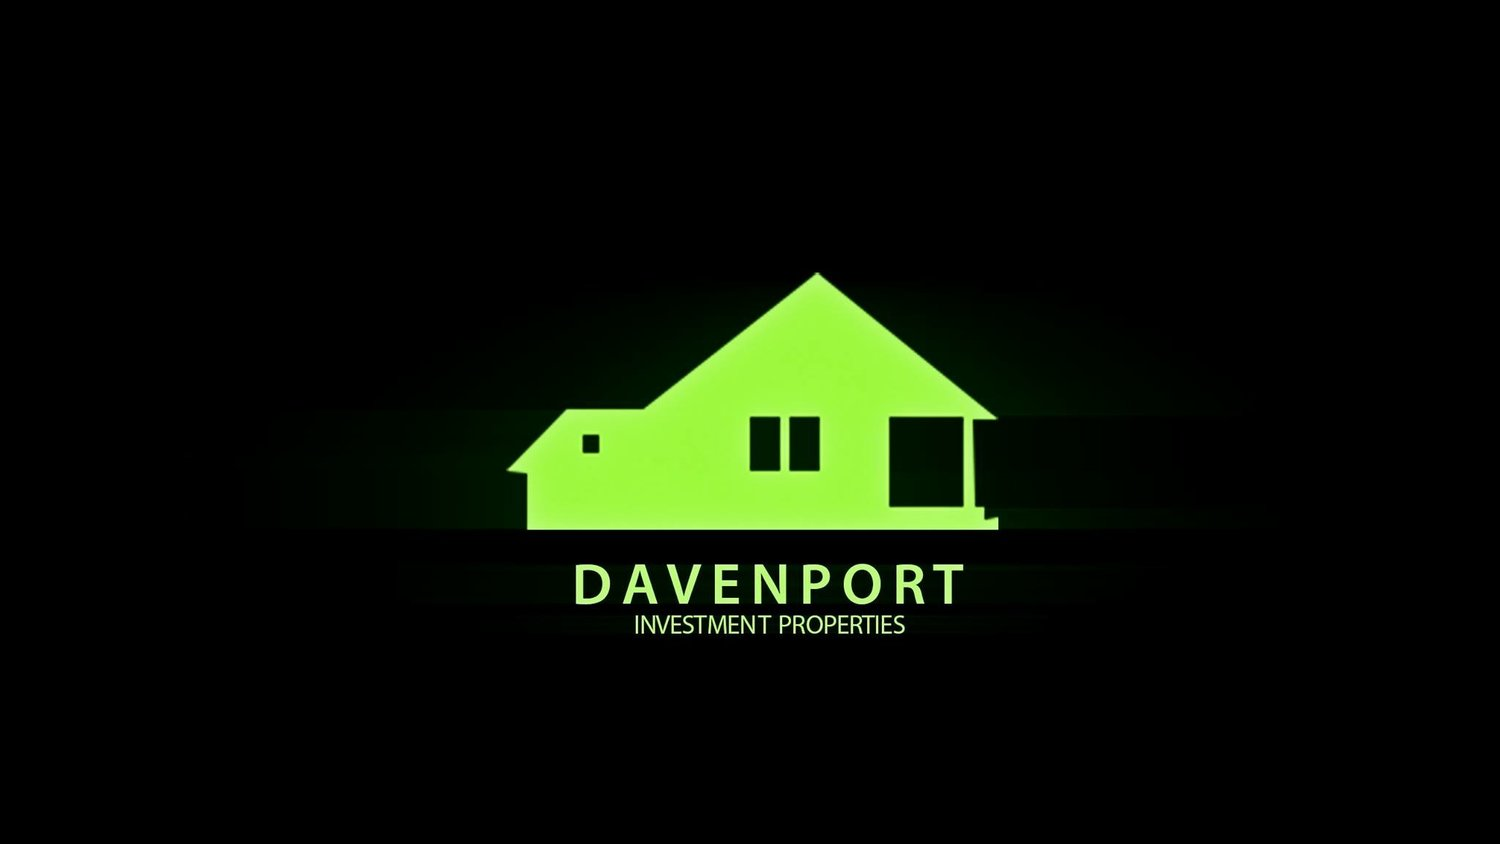 Davenport Investment Properties